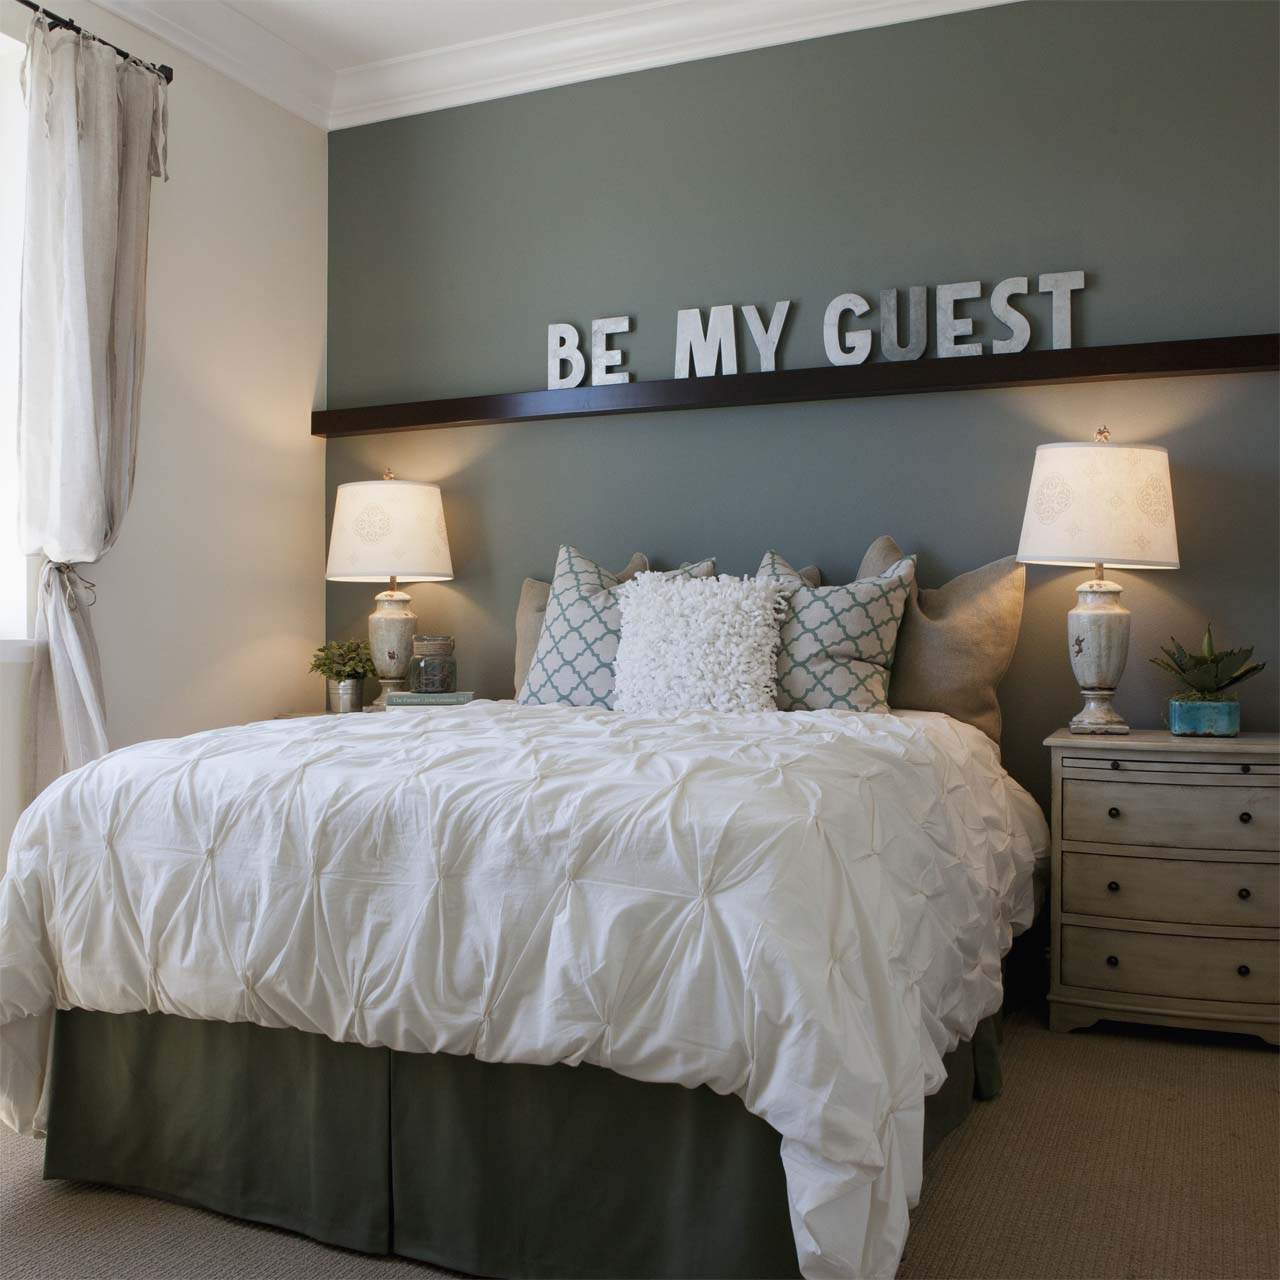 Most Thoughtful Bed For Your Guests